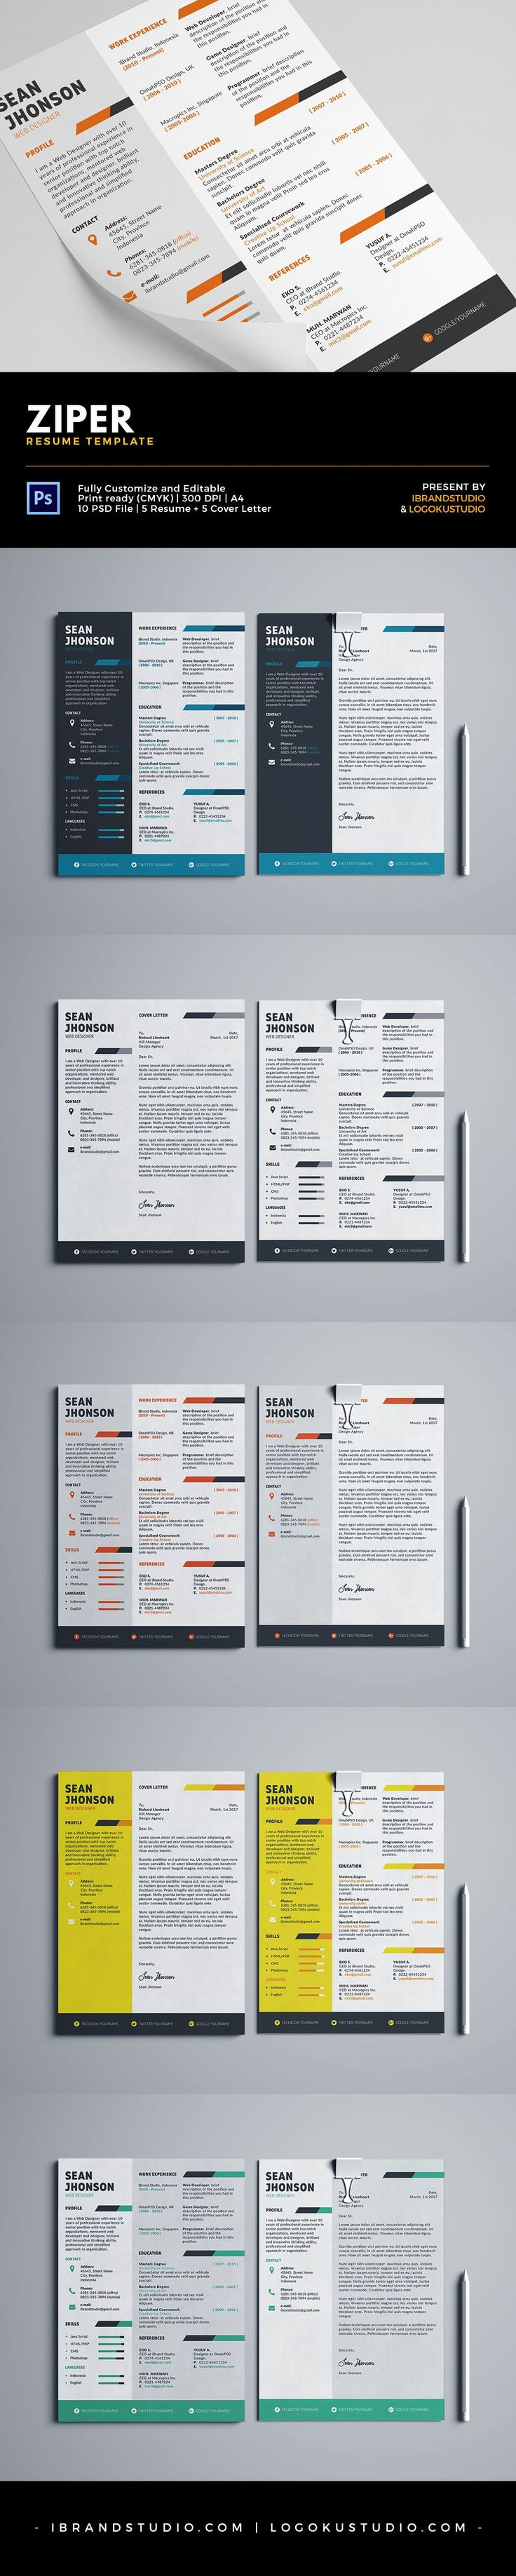 Functional Resume Template Microsoft%0A Free Ziper Resume Template and Cover Letter    Styles  PSD